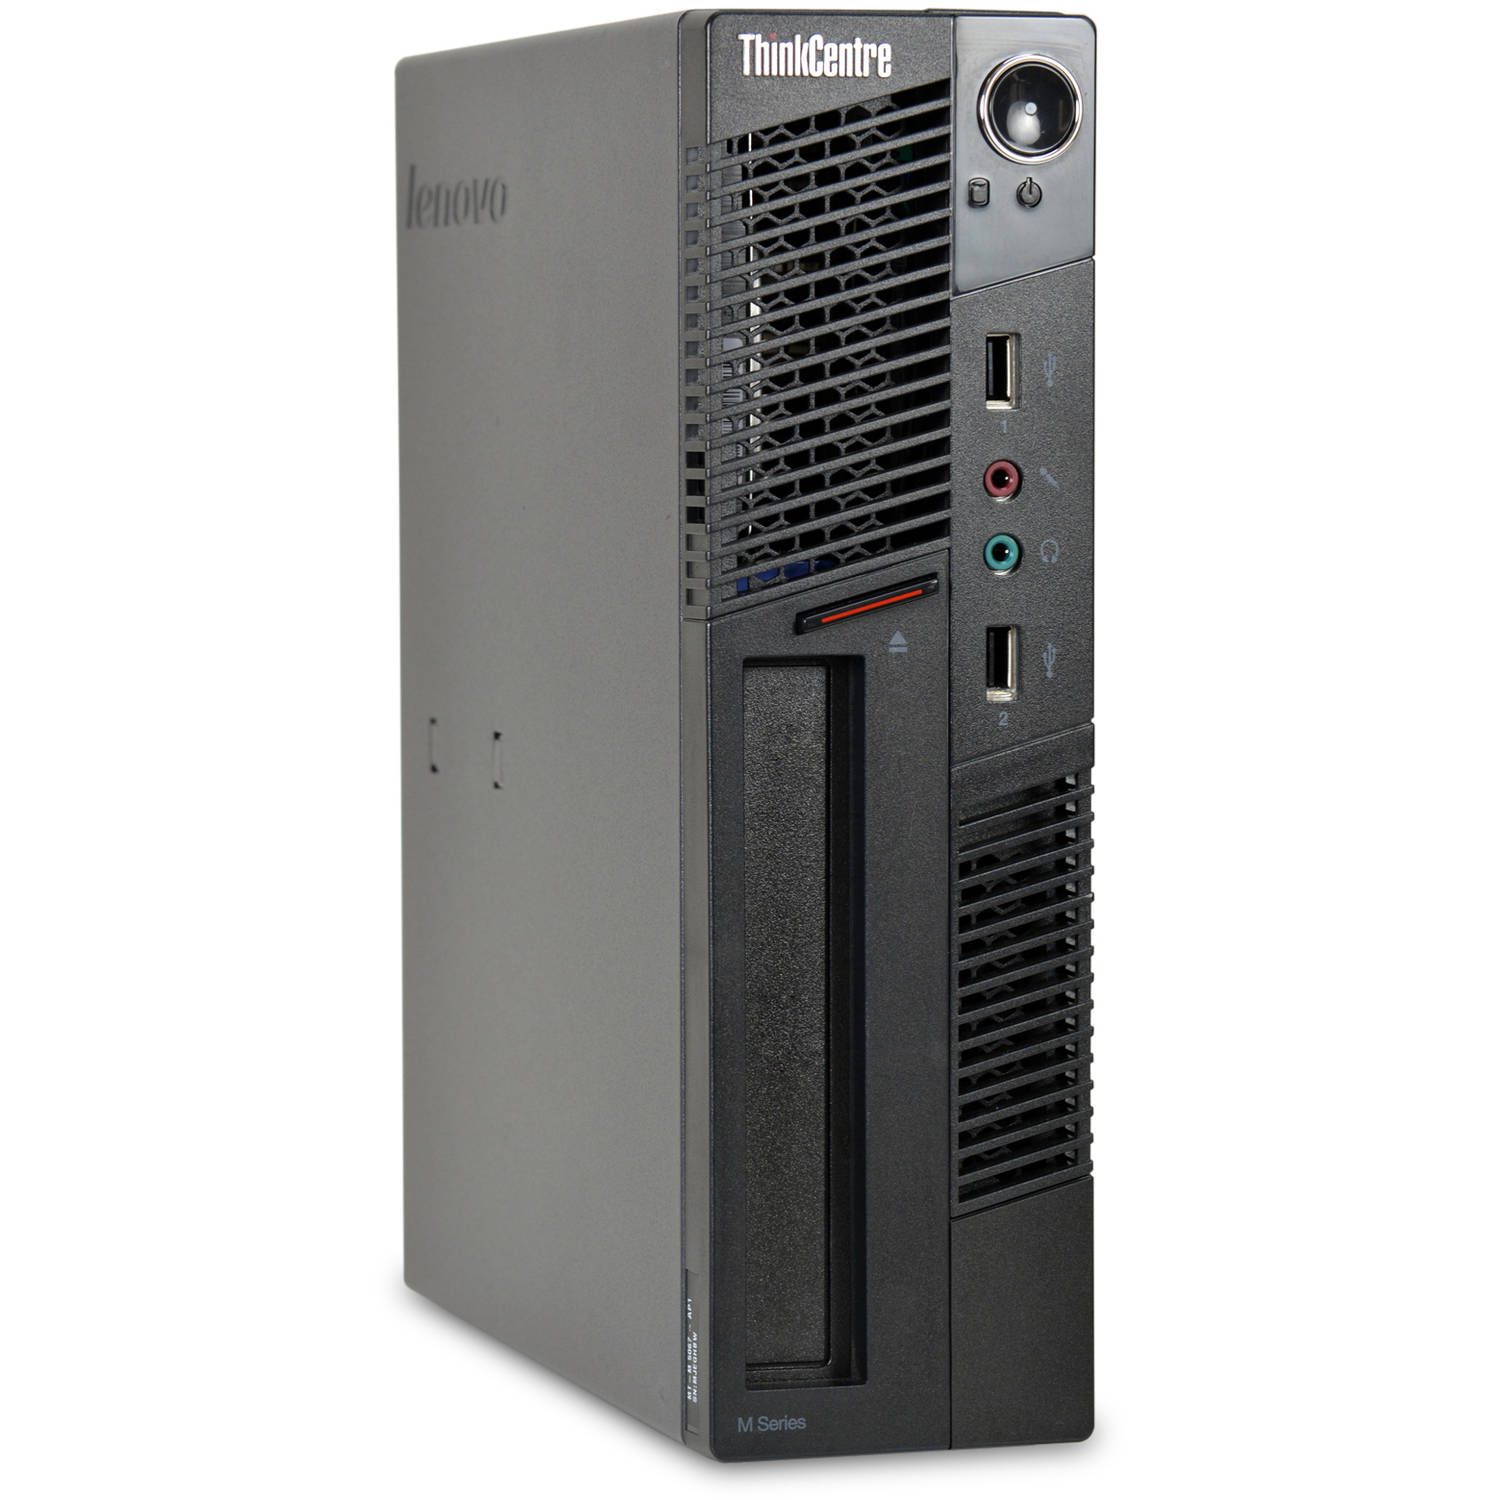 Refurbished Lenovo ThinkCentre M91P Desktop PC with Intel Core i5-2400S Processor, 8GB Memory, 320GB Hard Drive and Windows 10 Pro (Monitor Not Included)